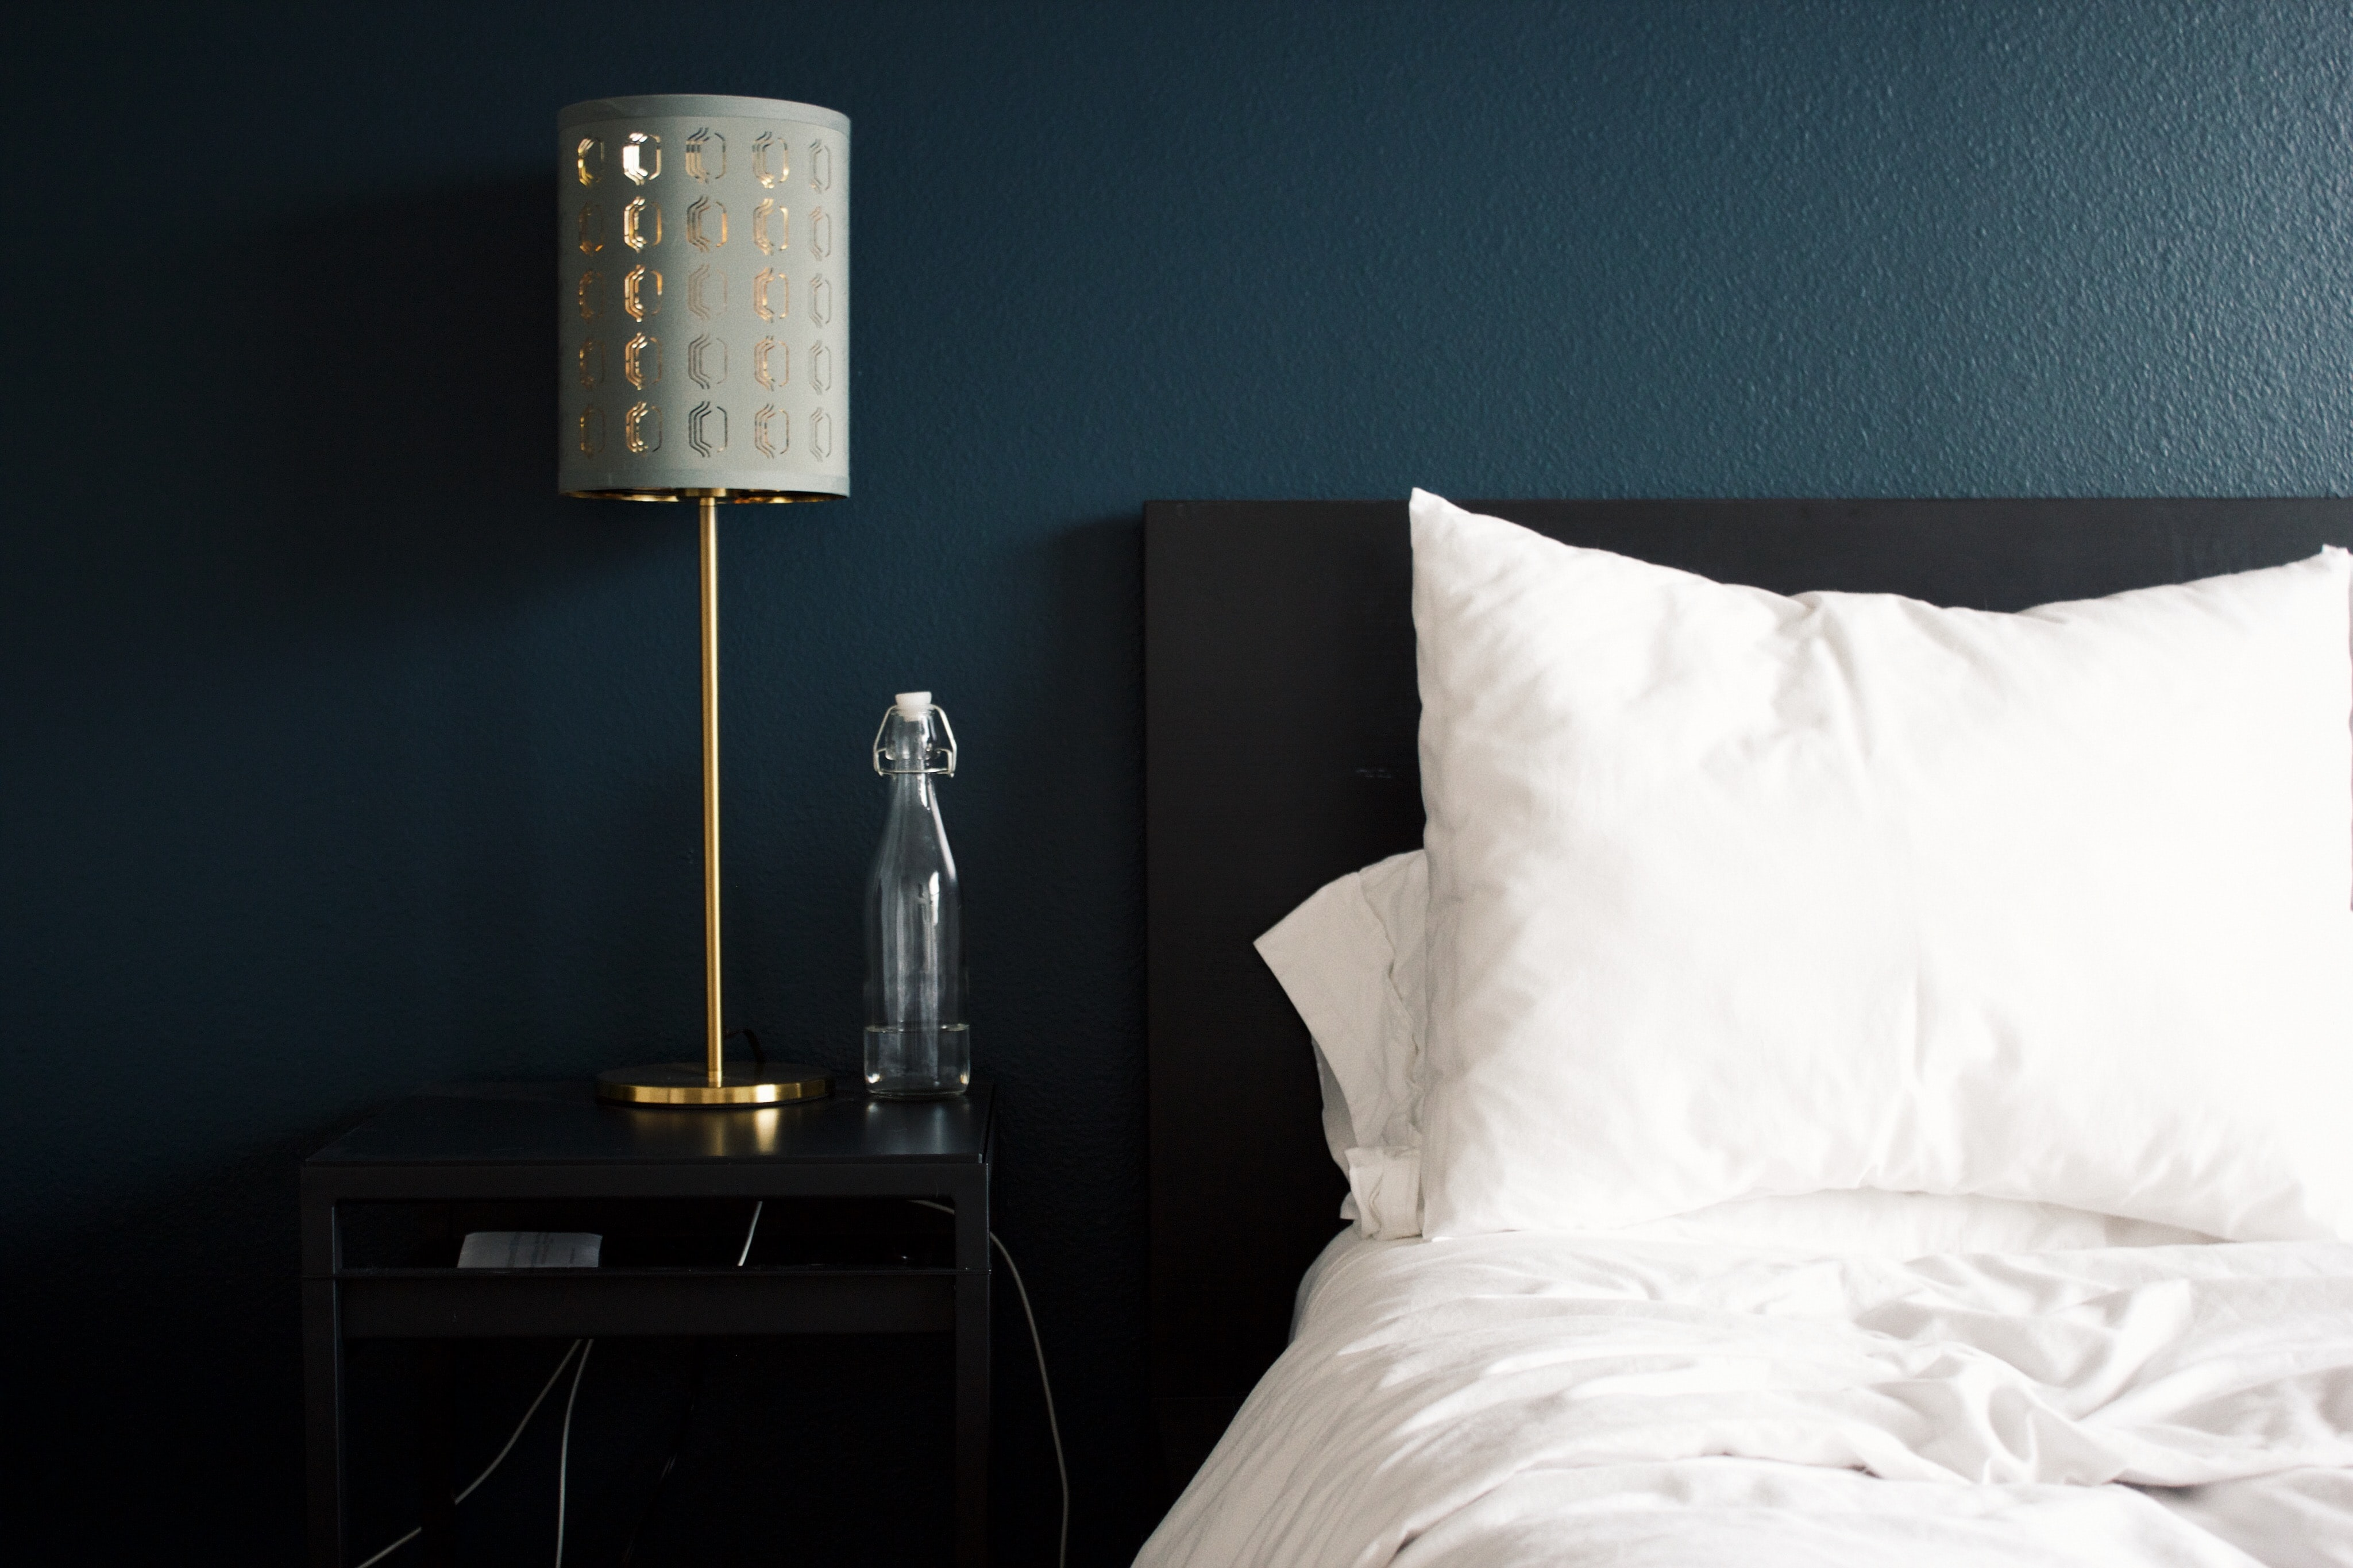 A photo of a hotel room bed and bedside table with a lamp on it